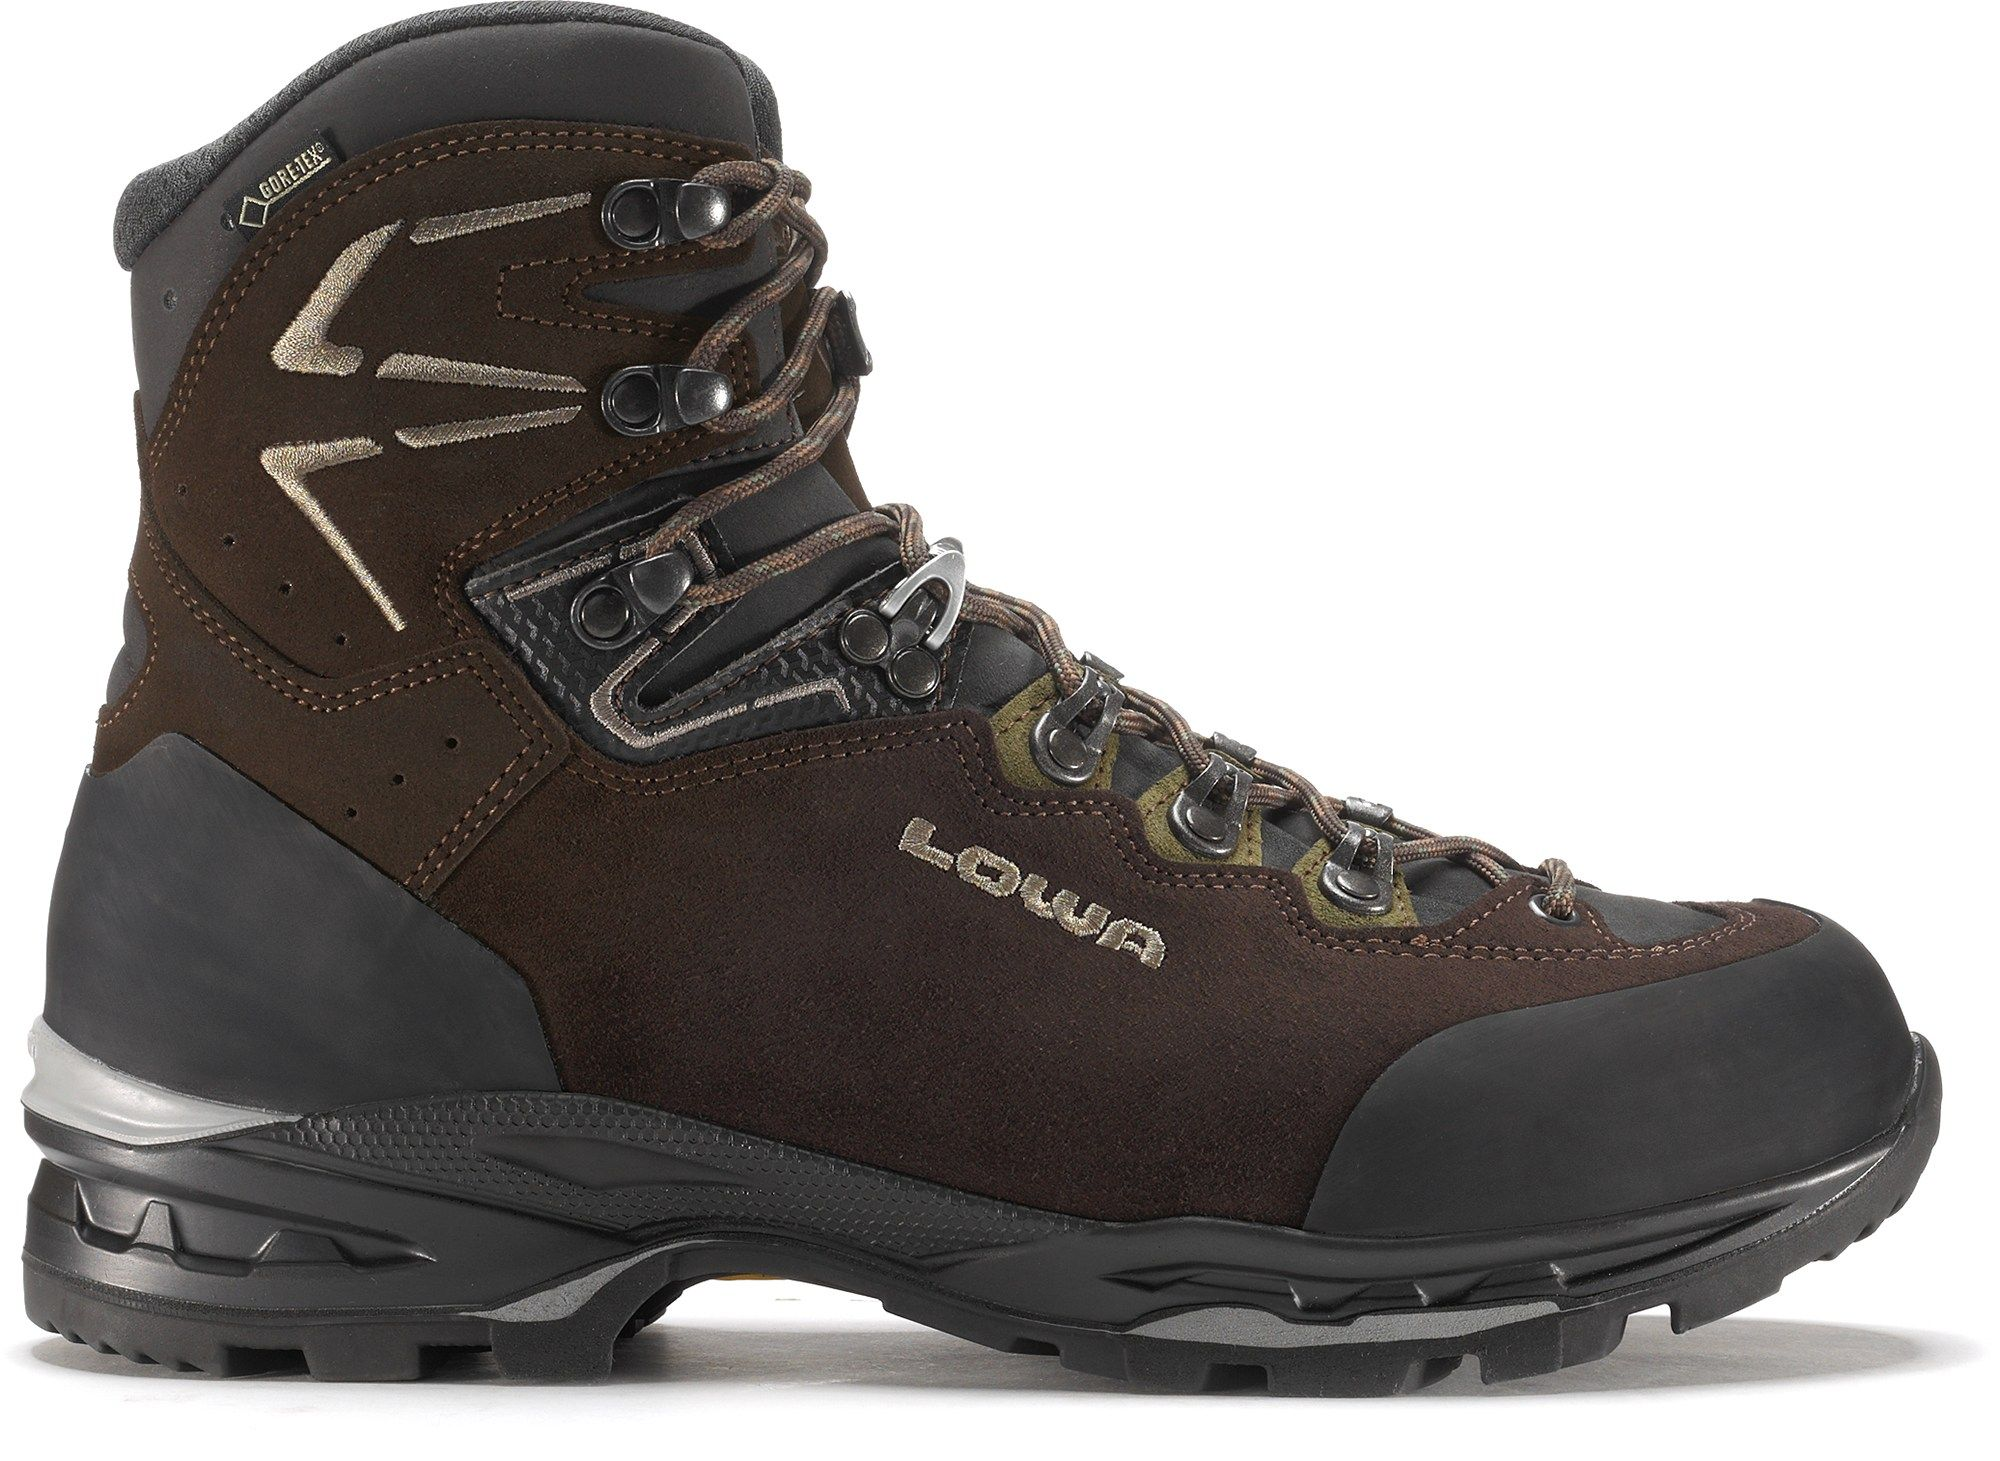 Lowa Male Ticam Ii Gtx Hiking Boots - Men's